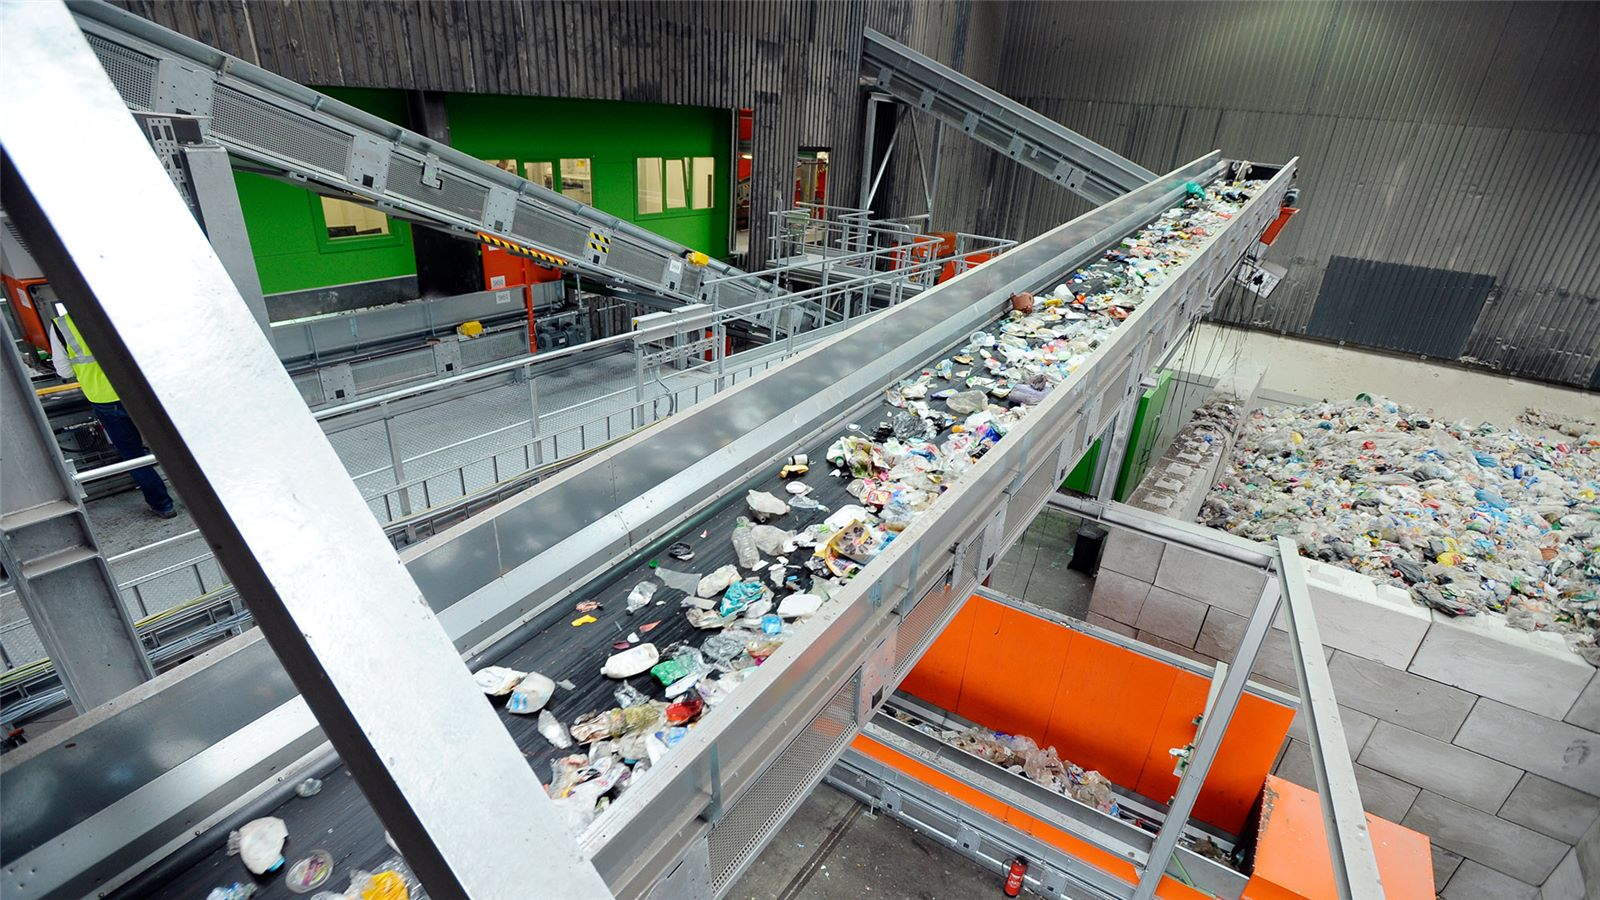 Rotterdam waste sorting plant